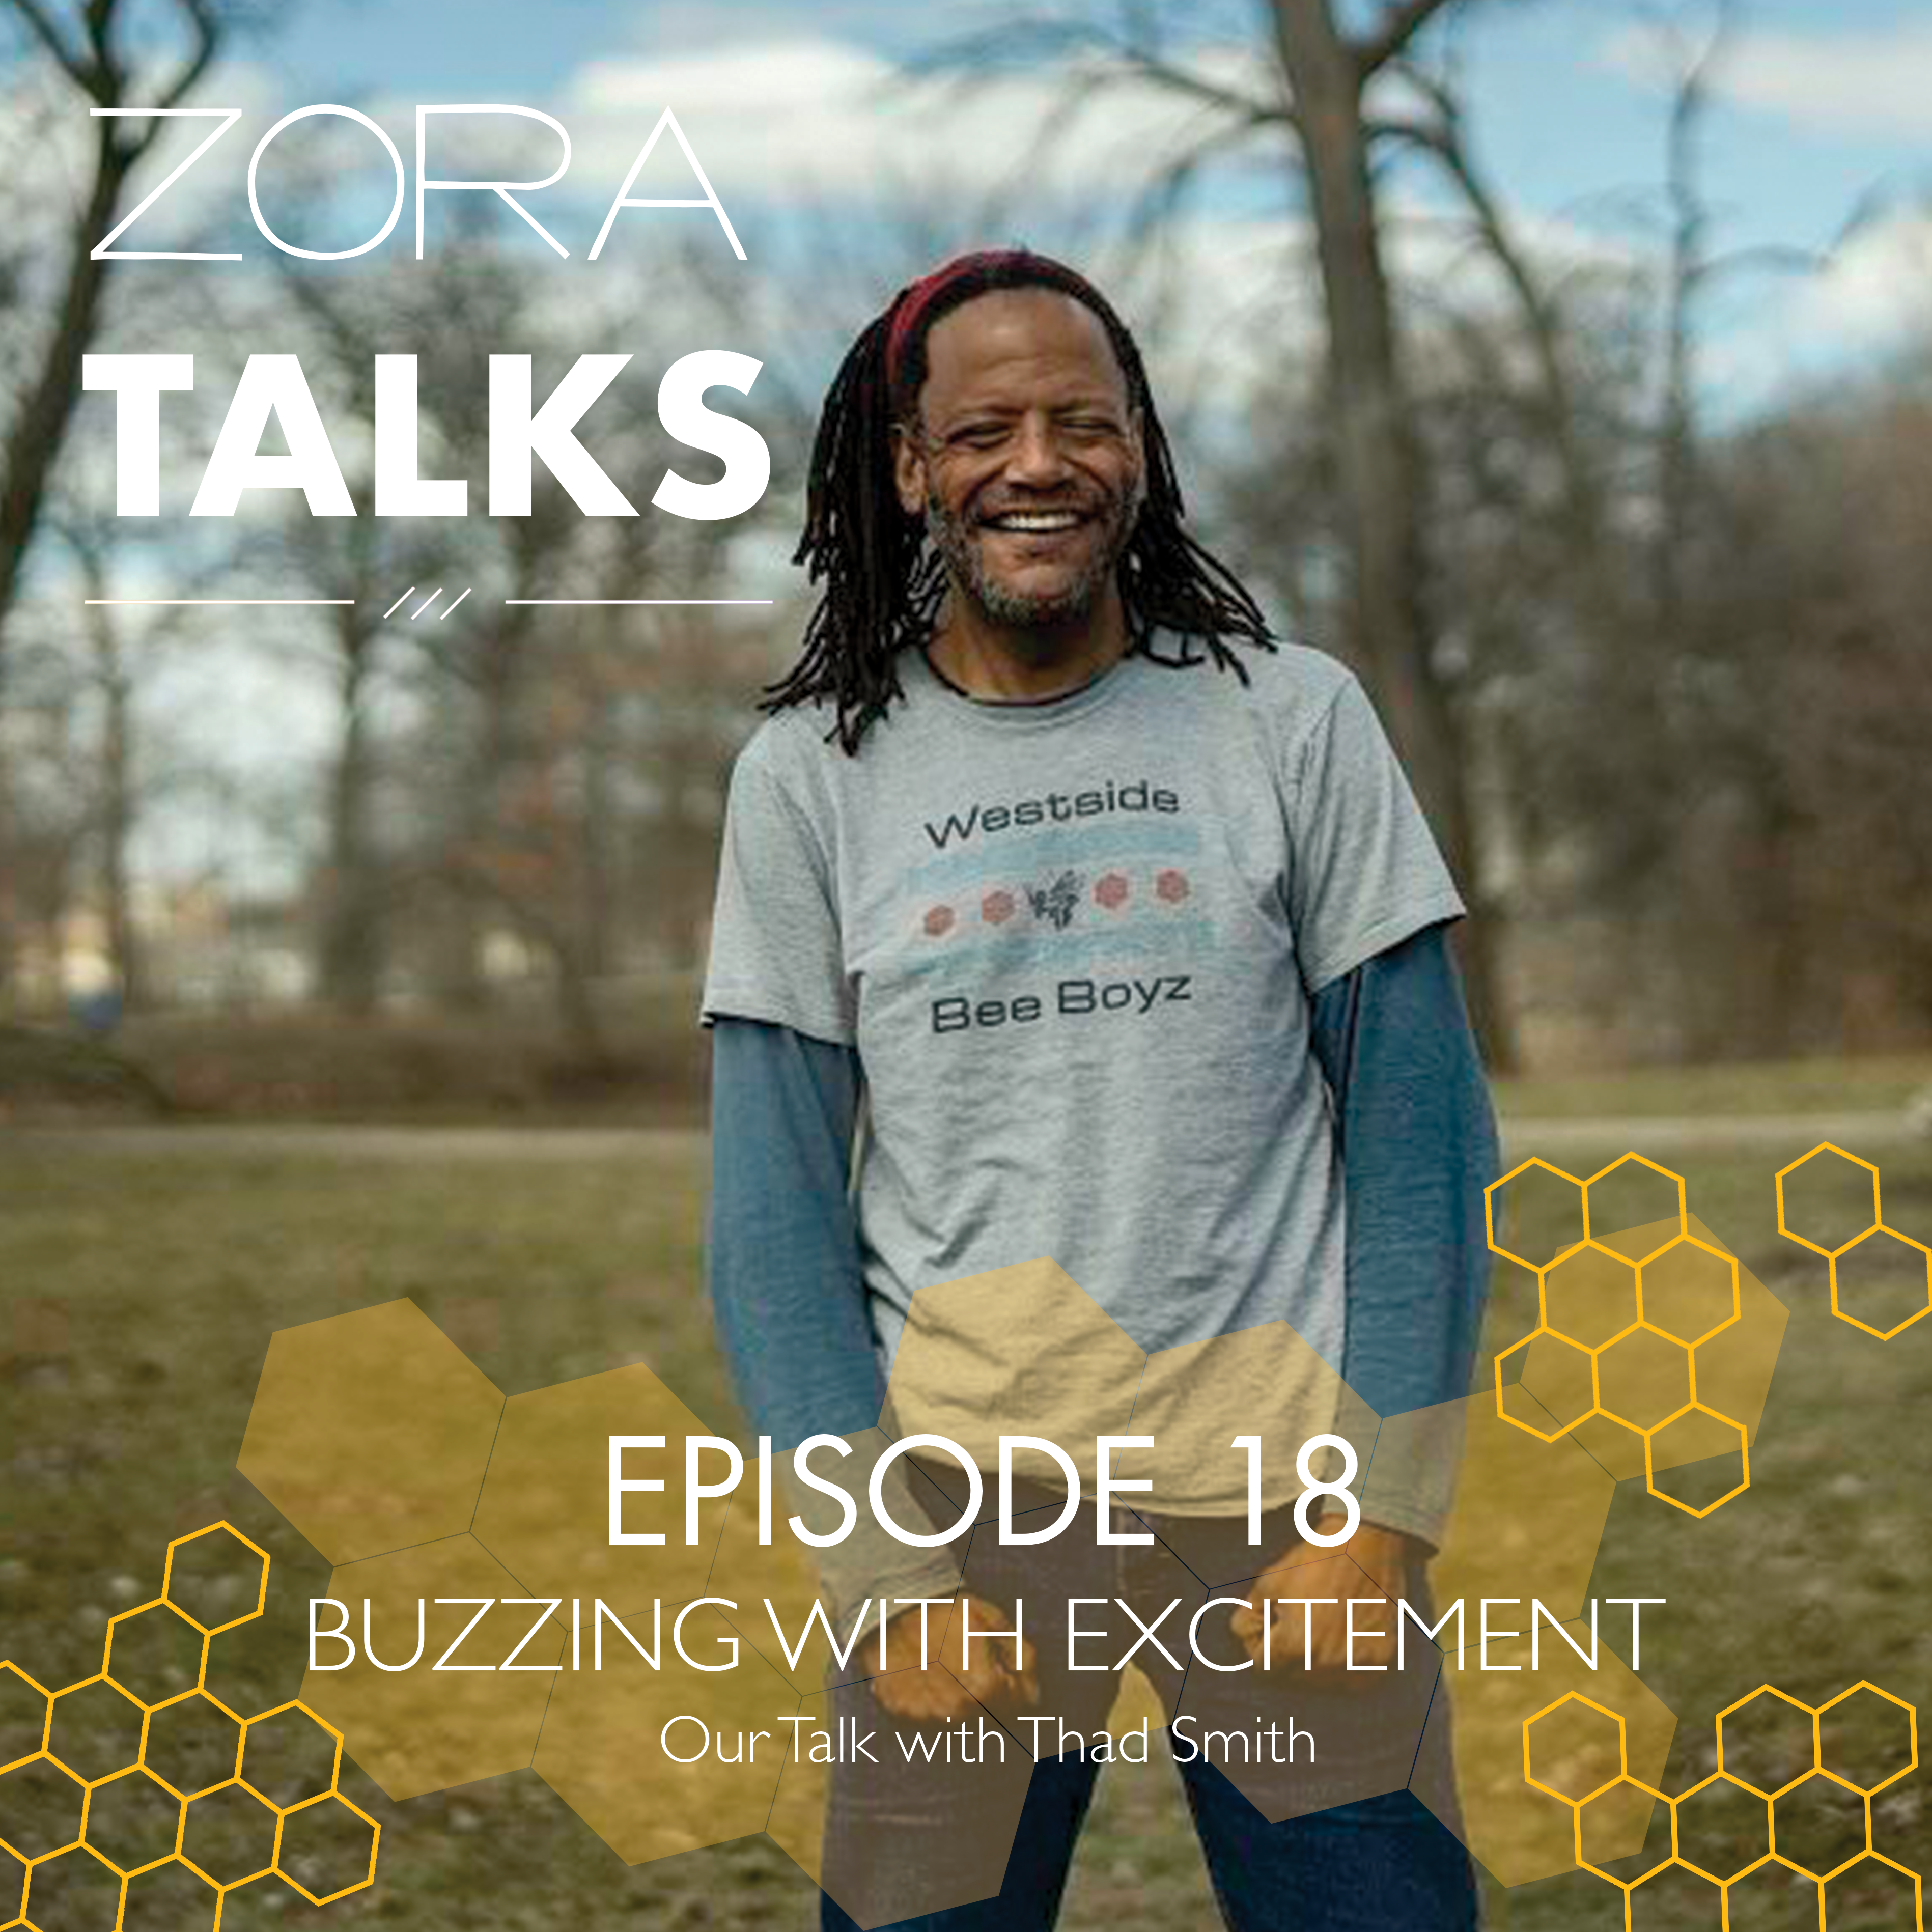 Man standing in a field smiling brightly. Zora Talks written over photo